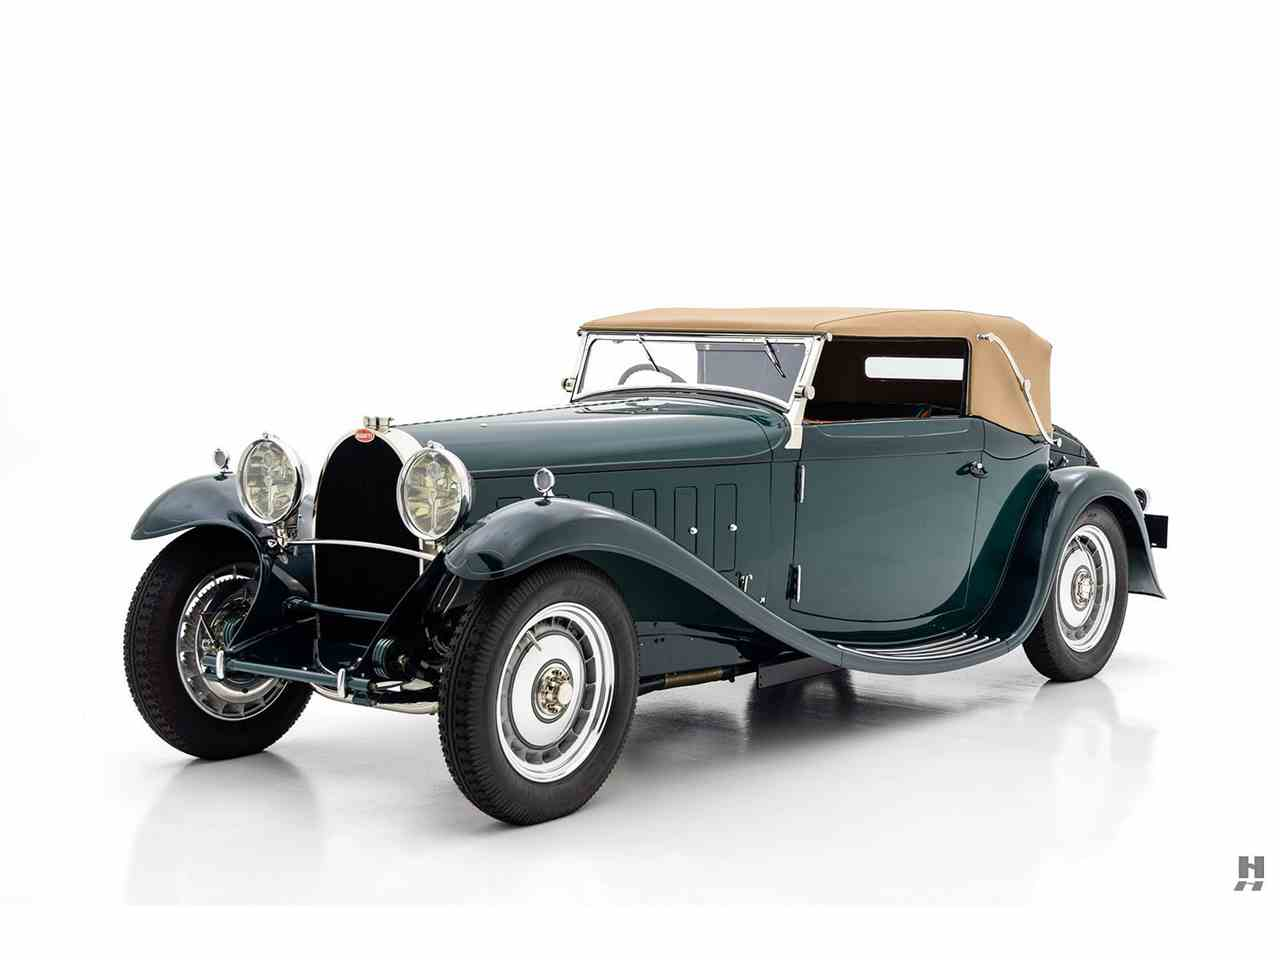 1929 Bugatti Type 46 for Sale | ClicCars.com | CC-1106769 on bugatti limousine, bugatti fast and furious 7, bugatti superveyron, ettore bugatti, bugatti emblem, bugatti 16c galibier concept, bugatti stretch limo, bugatti eb118, bugatti tumblr, bugatti eb110, bugatti phone, bugatti hd, bugatti company, bugatti type 51, bugatti finale, bugatti prototypes, bugatti engine, bentley 3.5 litre, bugatti hennessey venom, bugatti design, roland bugatti, bugatti with girls, bugatti veyron, bugatti mph, bugatti aventador, bugatti royale,